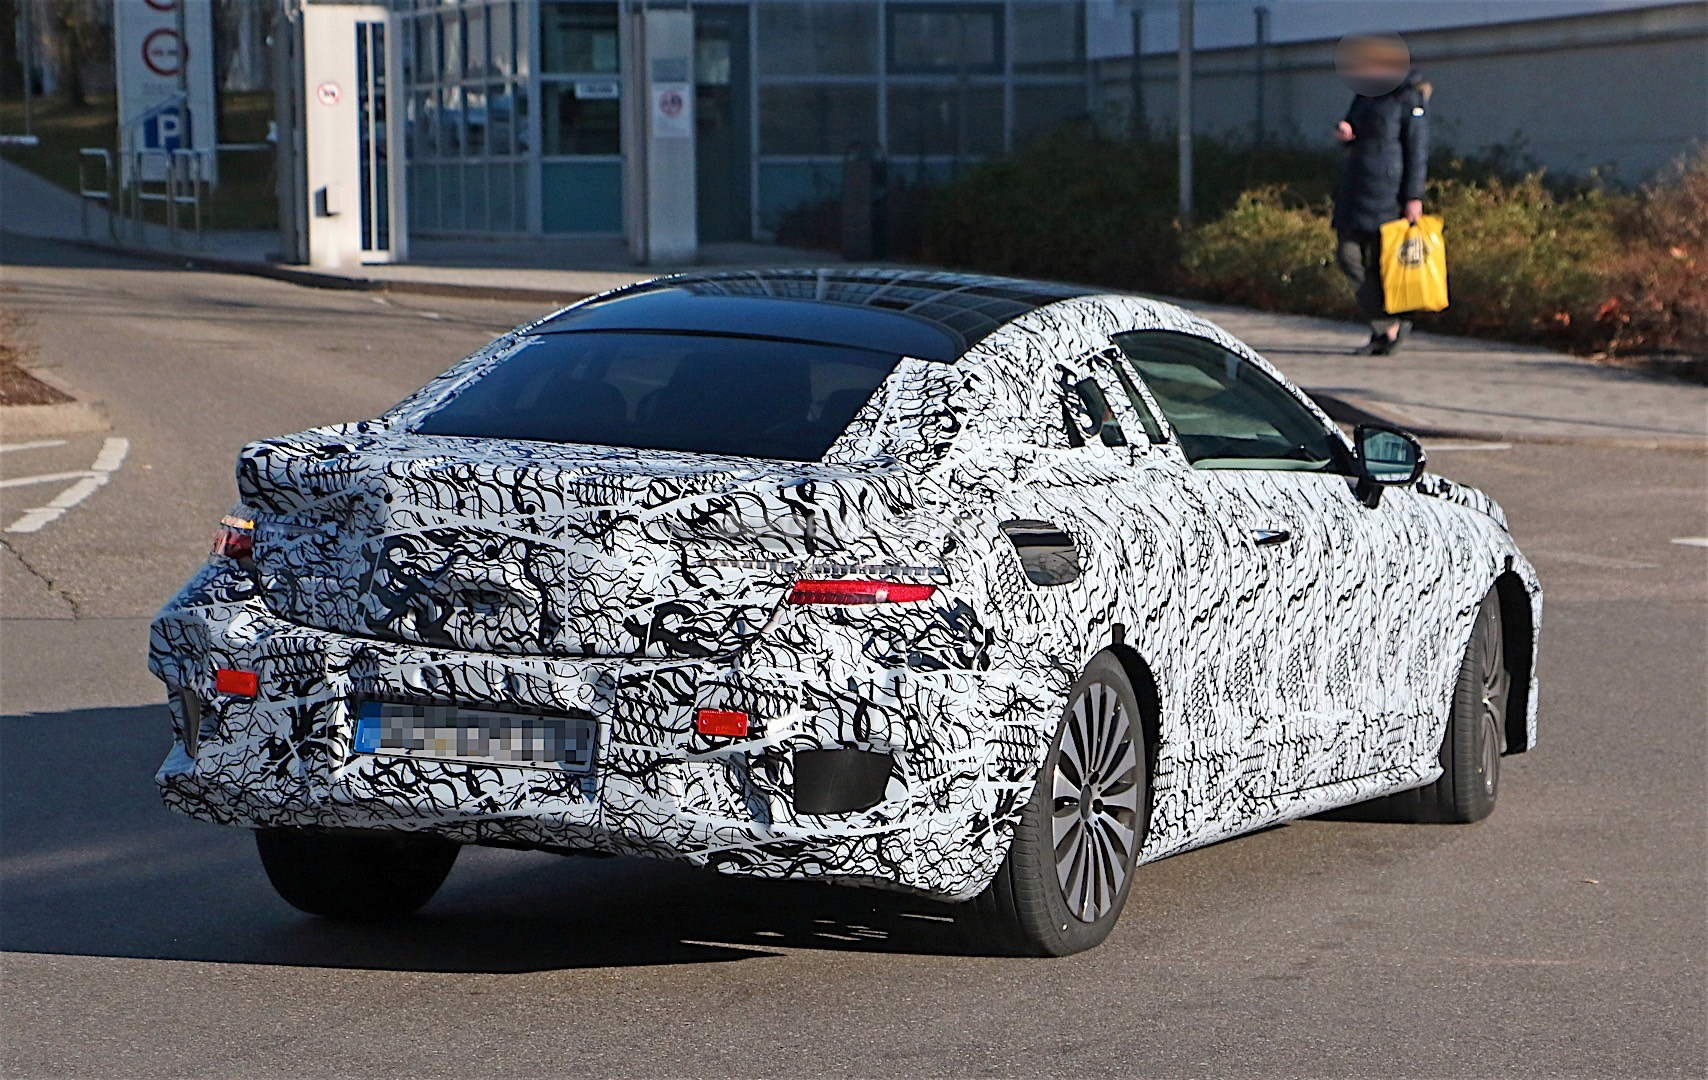 2018-mercedes-benz-e-class-coupe-shows-its-b-pillarless-profile-for-the-first-time_9